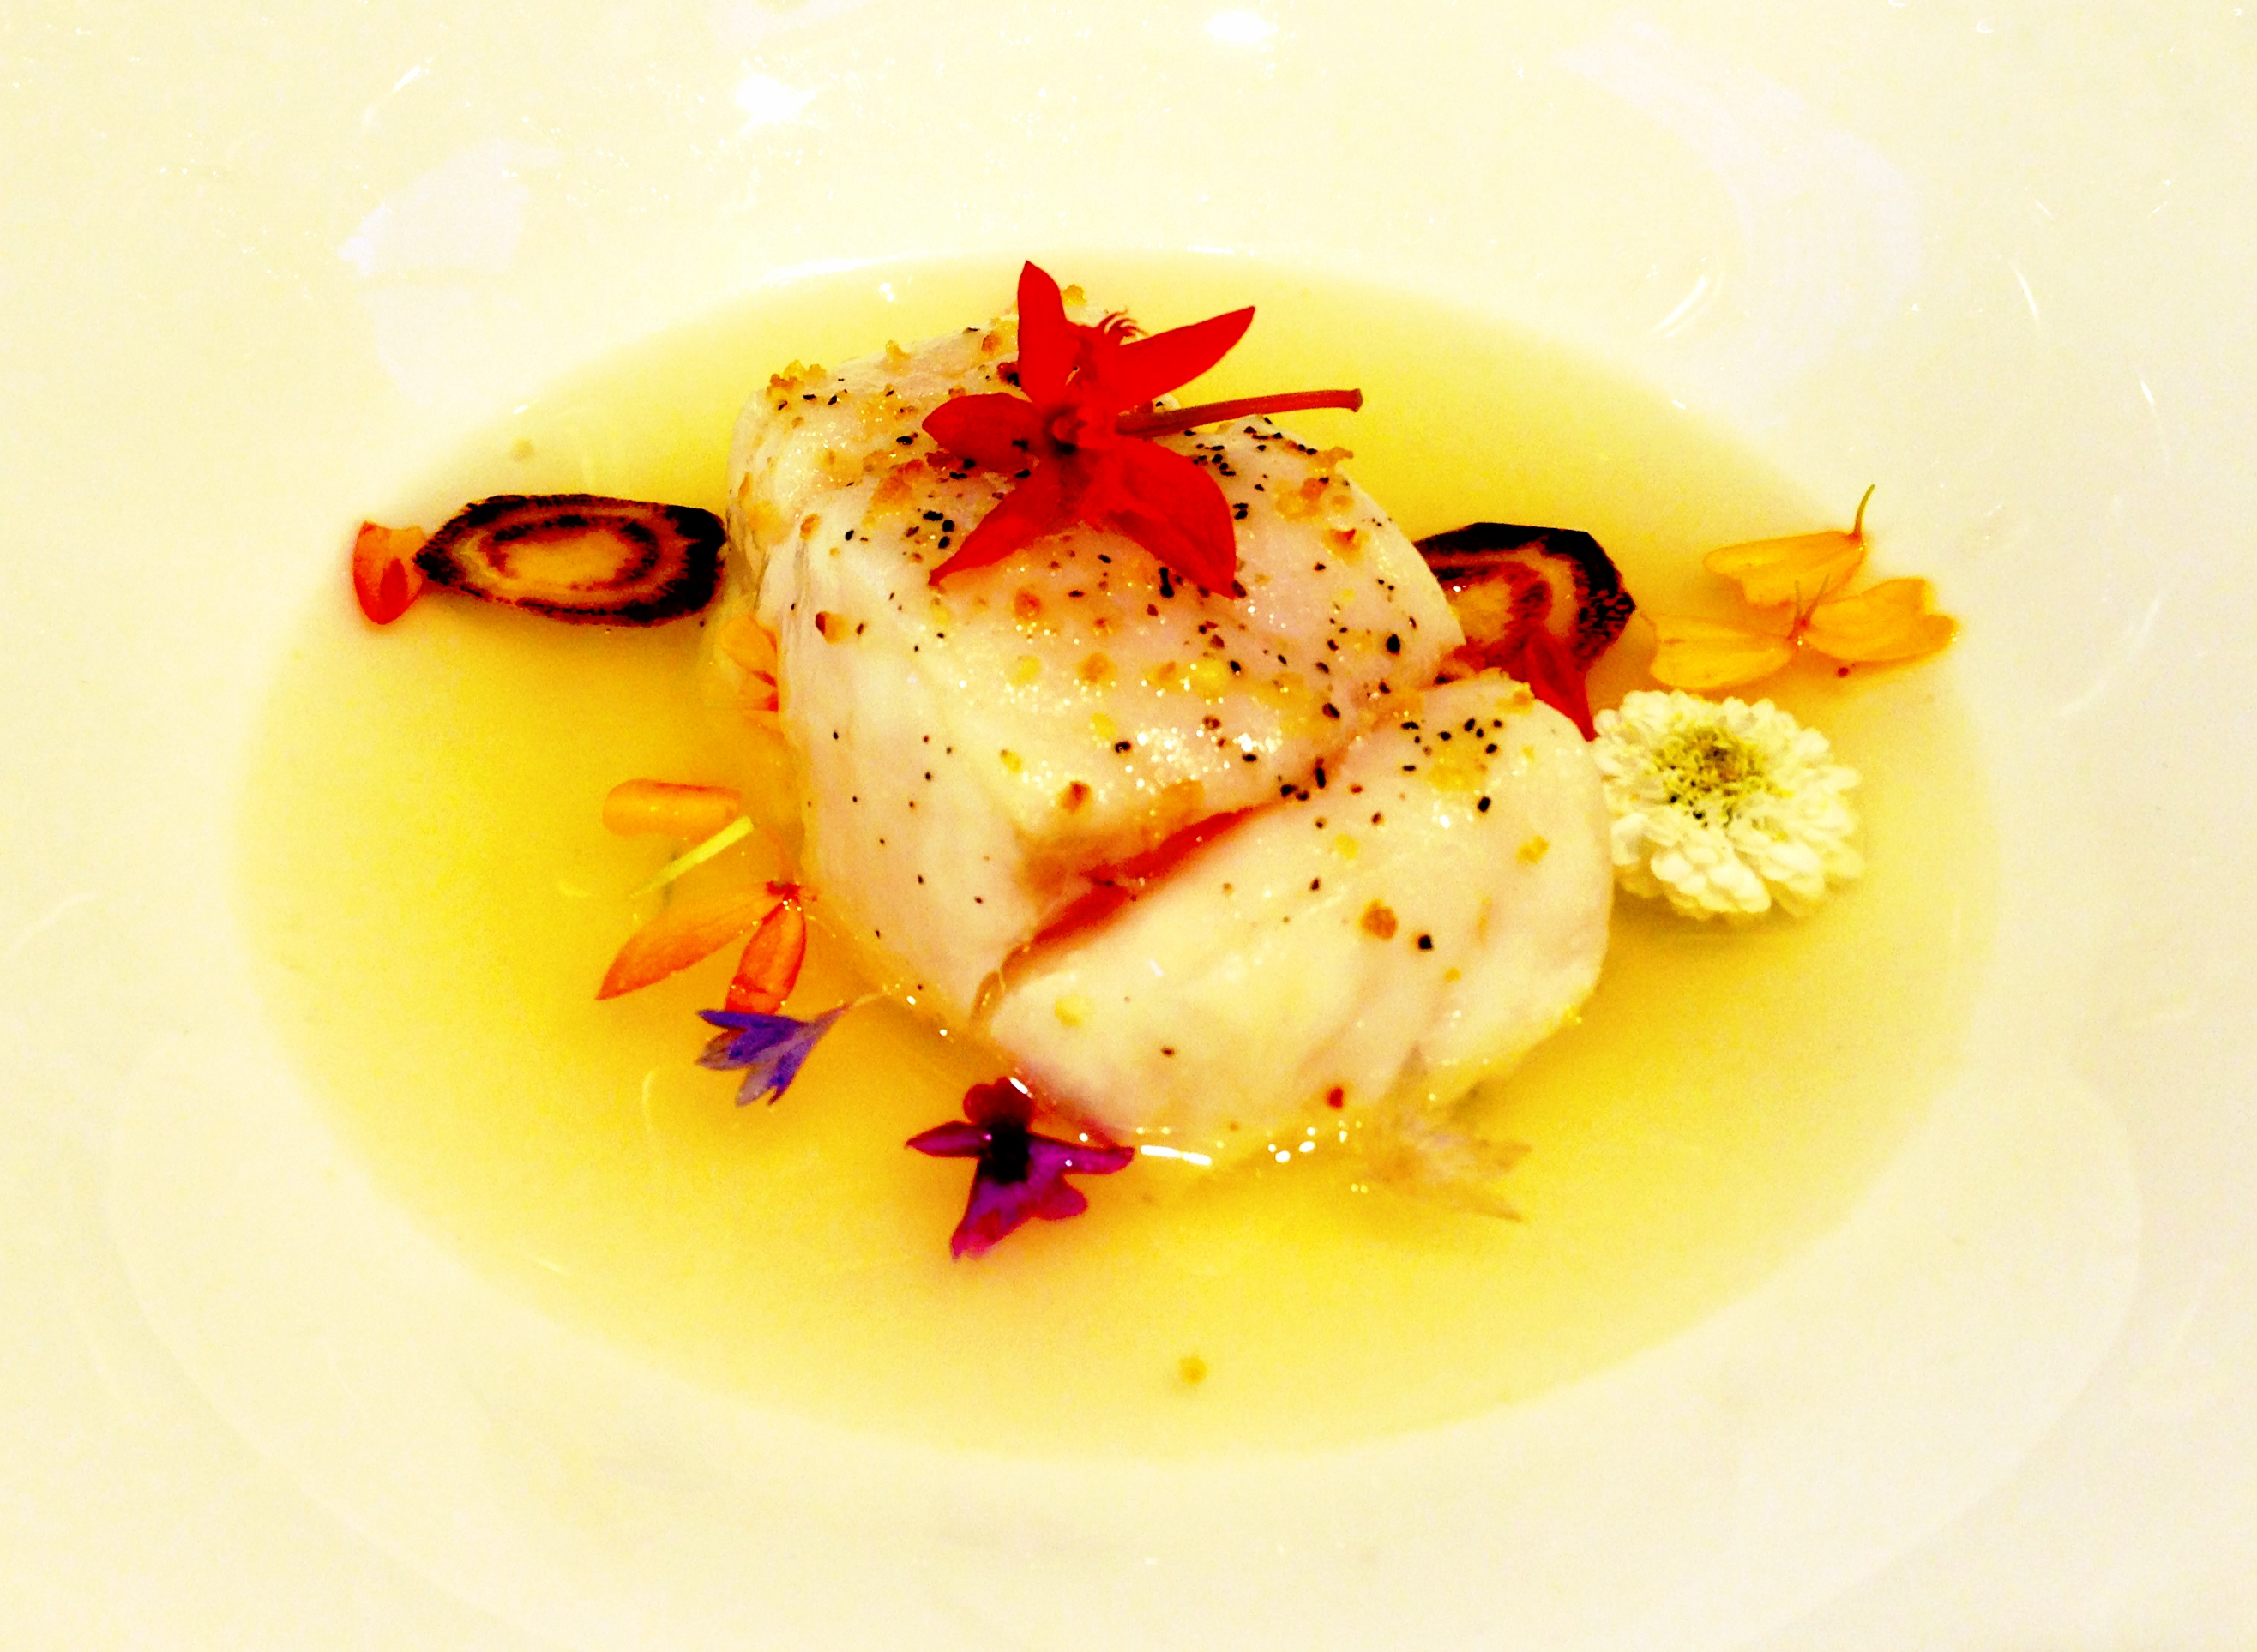 Spicy & Floral Citrus Consomme